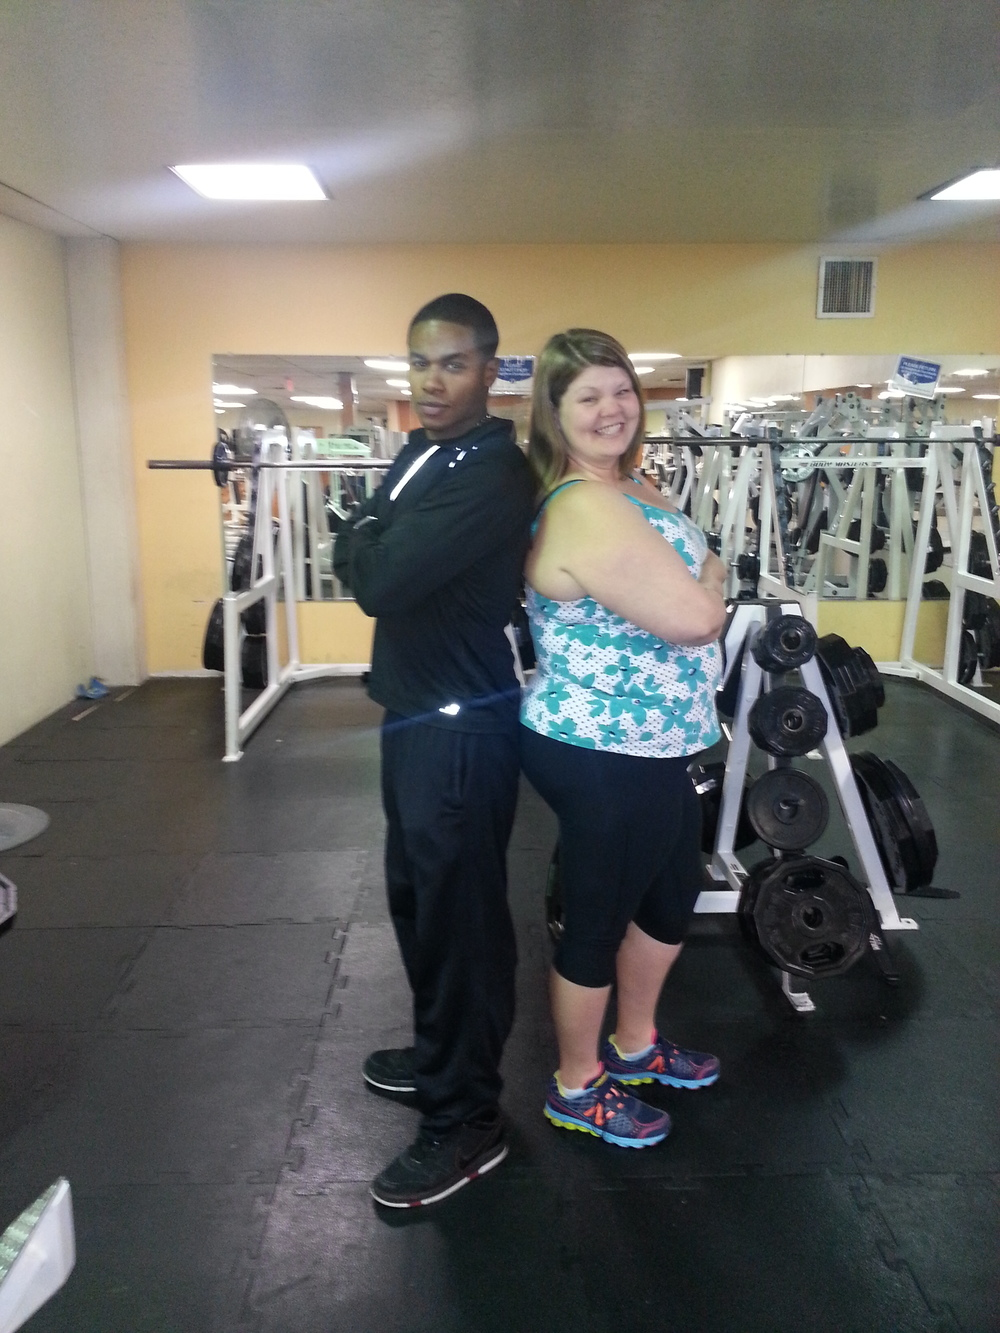 Personal trainer Isaac Miller & I